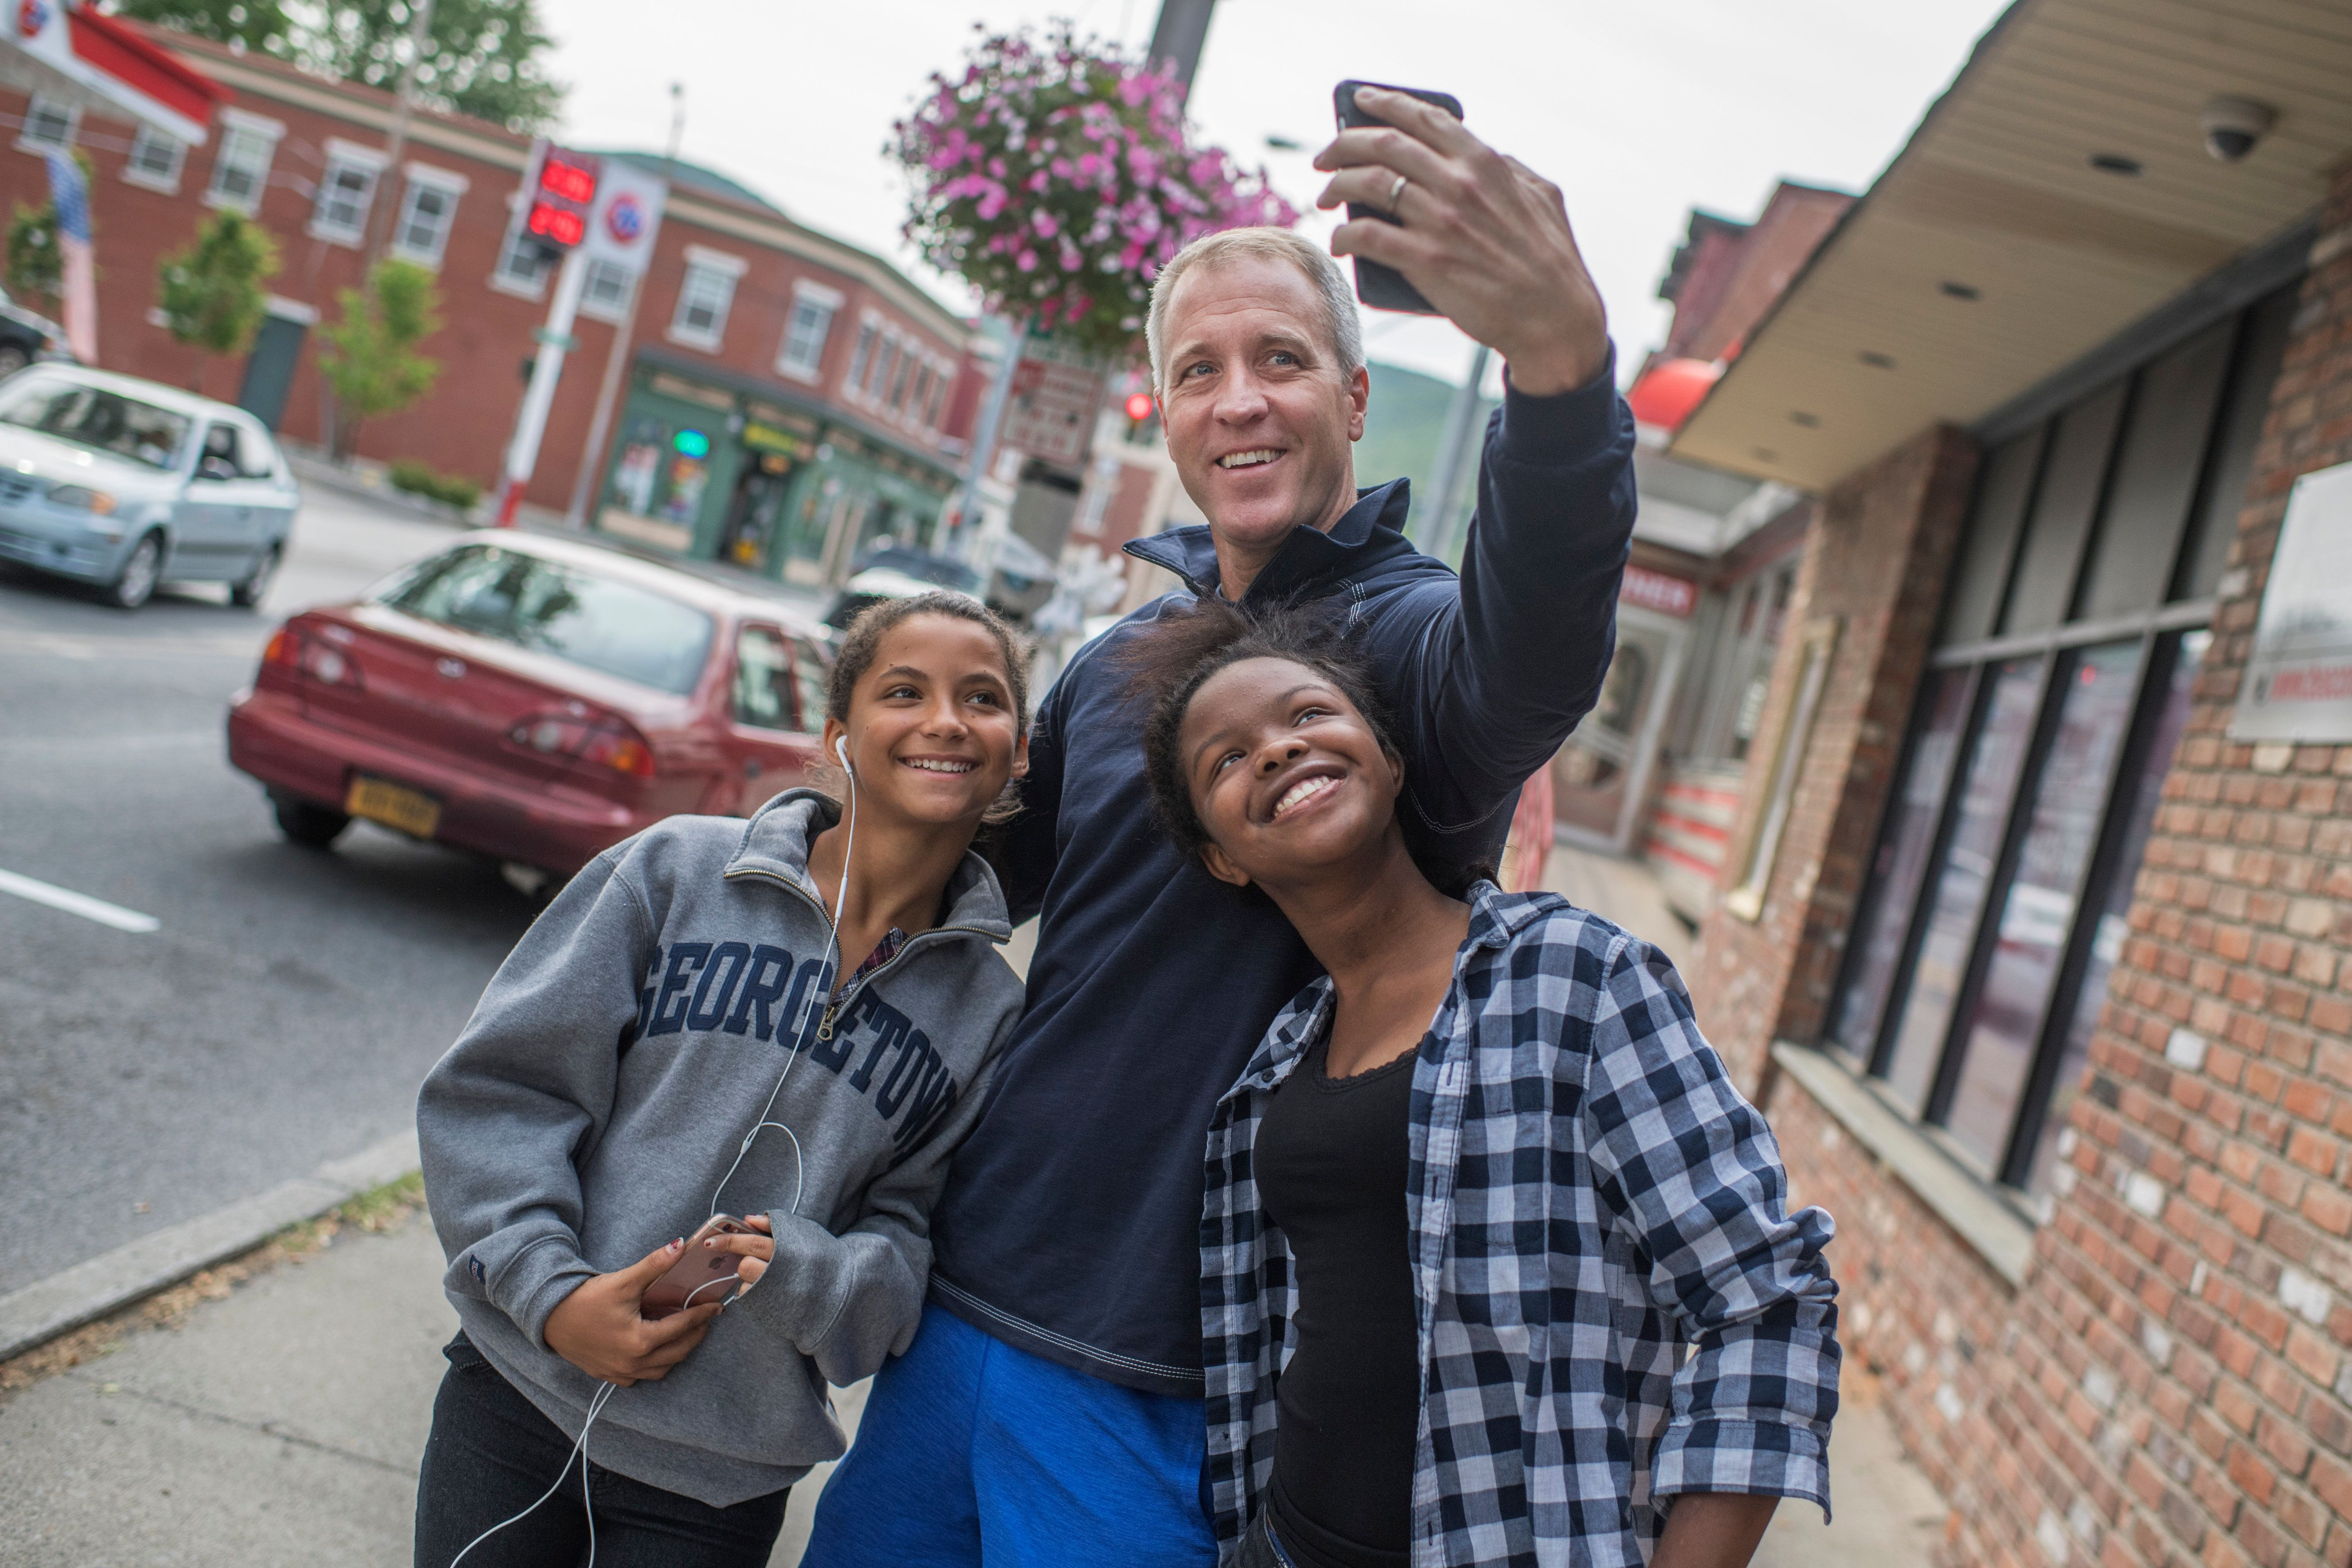 UNITED STATES - JUNE 11: Rep. Sean Patrick Maloney, D-N.Y., makes a snapchat with with his daughters Daley, 15, right, and Essie, 13, outside of the Yankee Clipper Diner in Beacon, N.Y., June 11, 2016. (Photo By Tom Williams/CQ Roll Call)